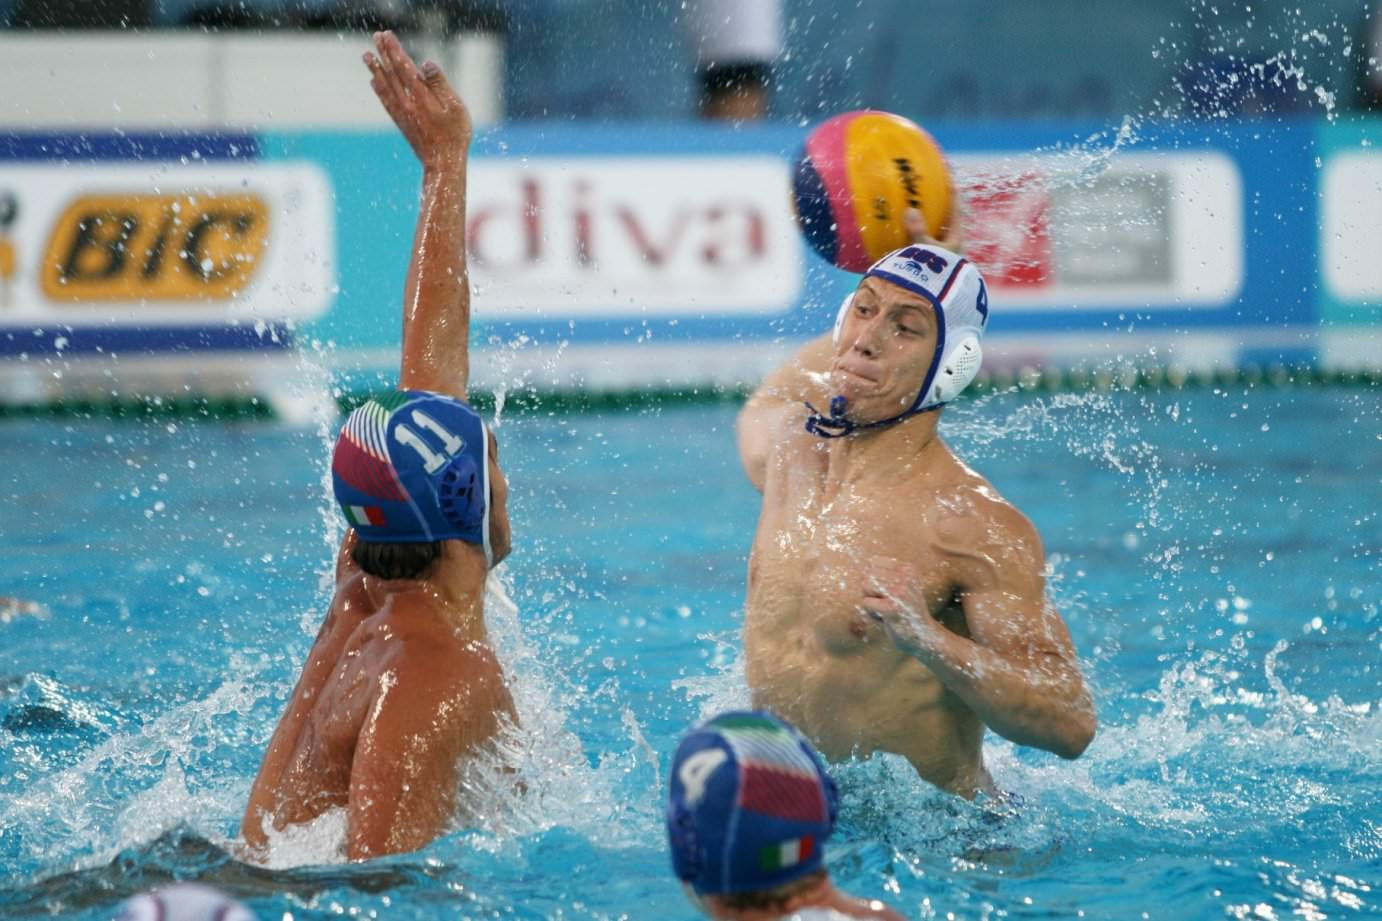 Italy to meet Serbia in repeat of 2015 final at World Men's Junior Water Polo Championships